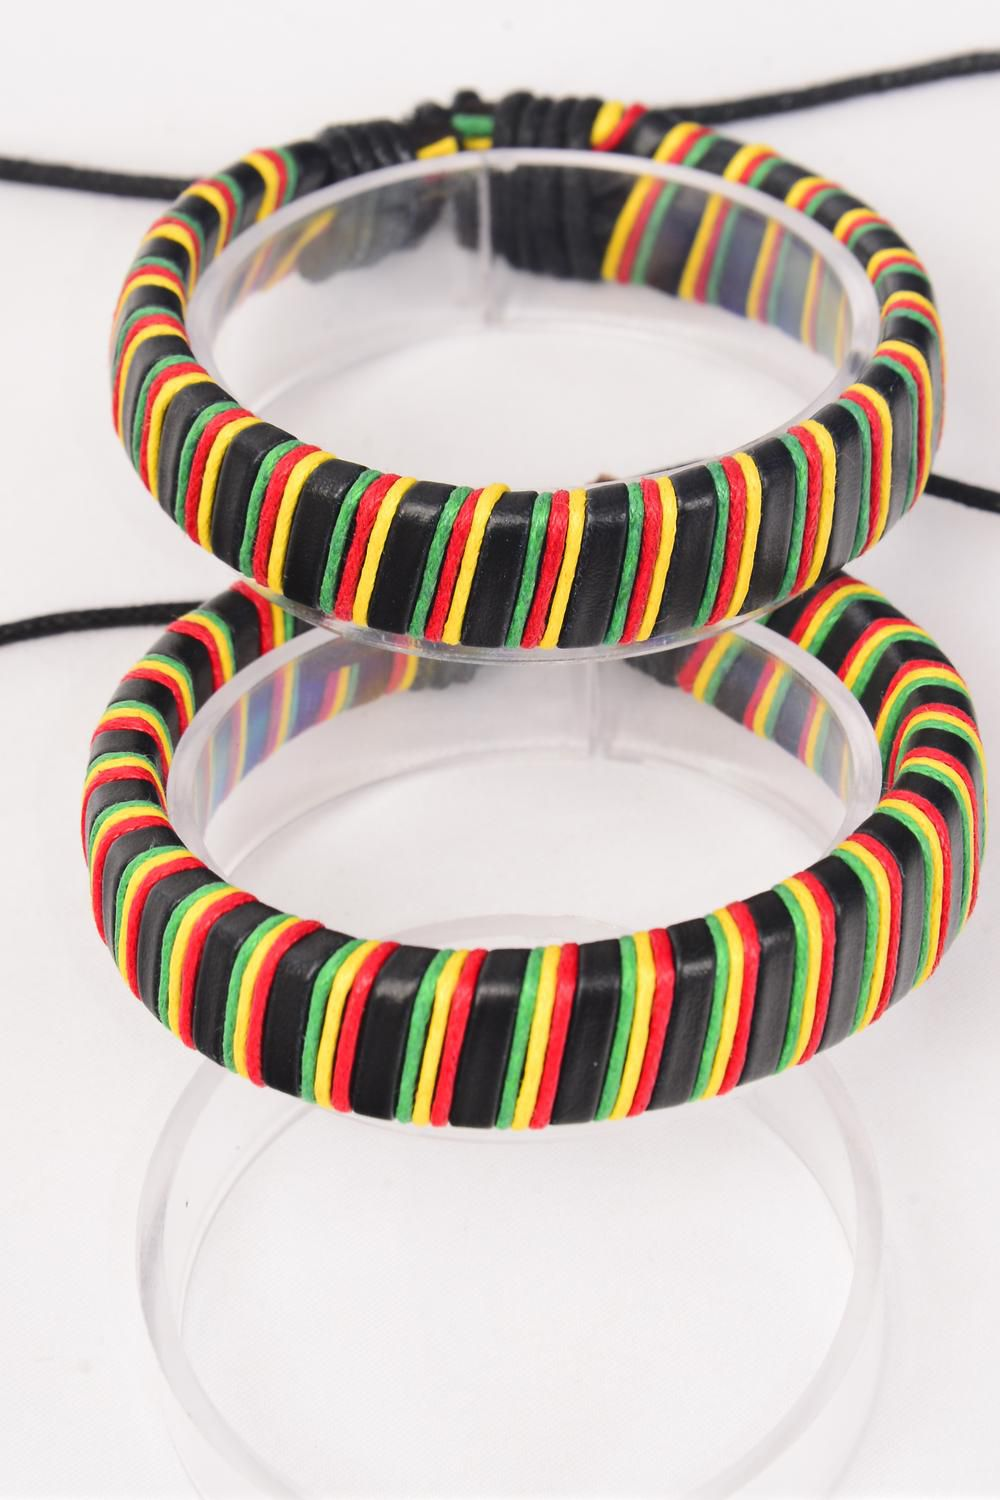 Bracelet Real leather Band Rasta Adjustable/DZ **Unisex** Adjustable,Hang Tag & OPP Bag & UPC Code